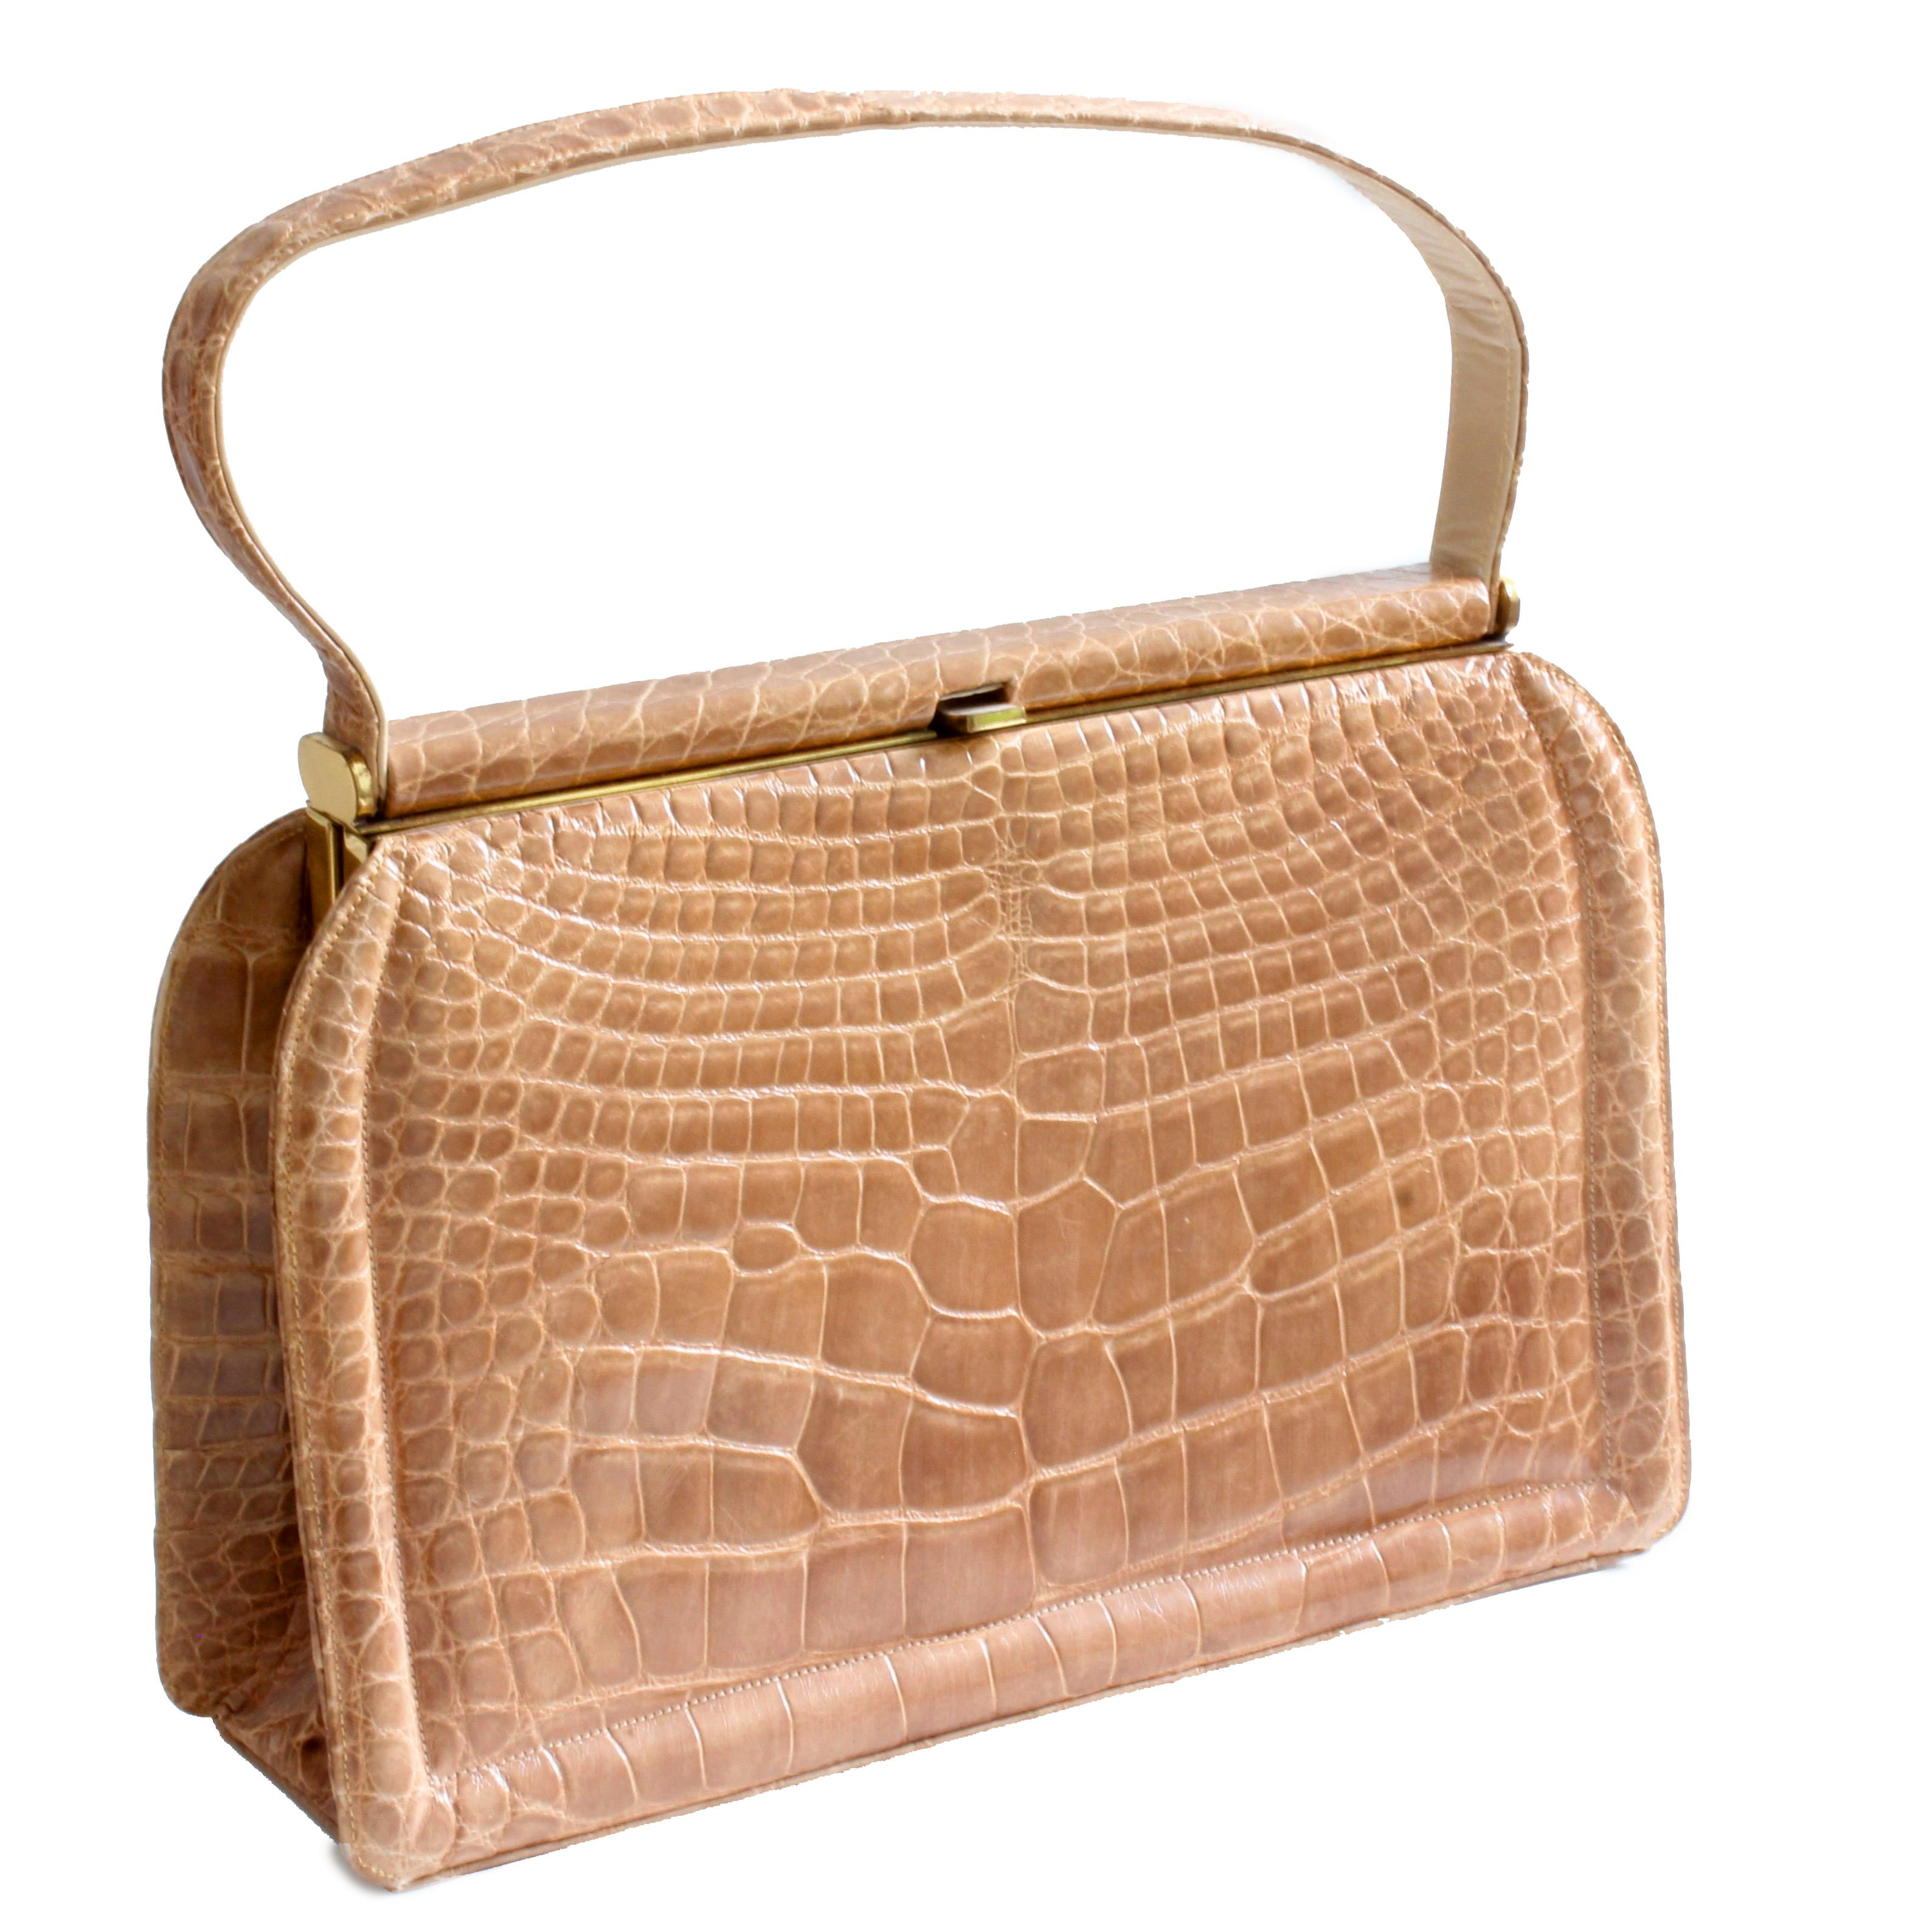 3d6fabe48b Deitsch Alligator Bag New Old Stock + Comb